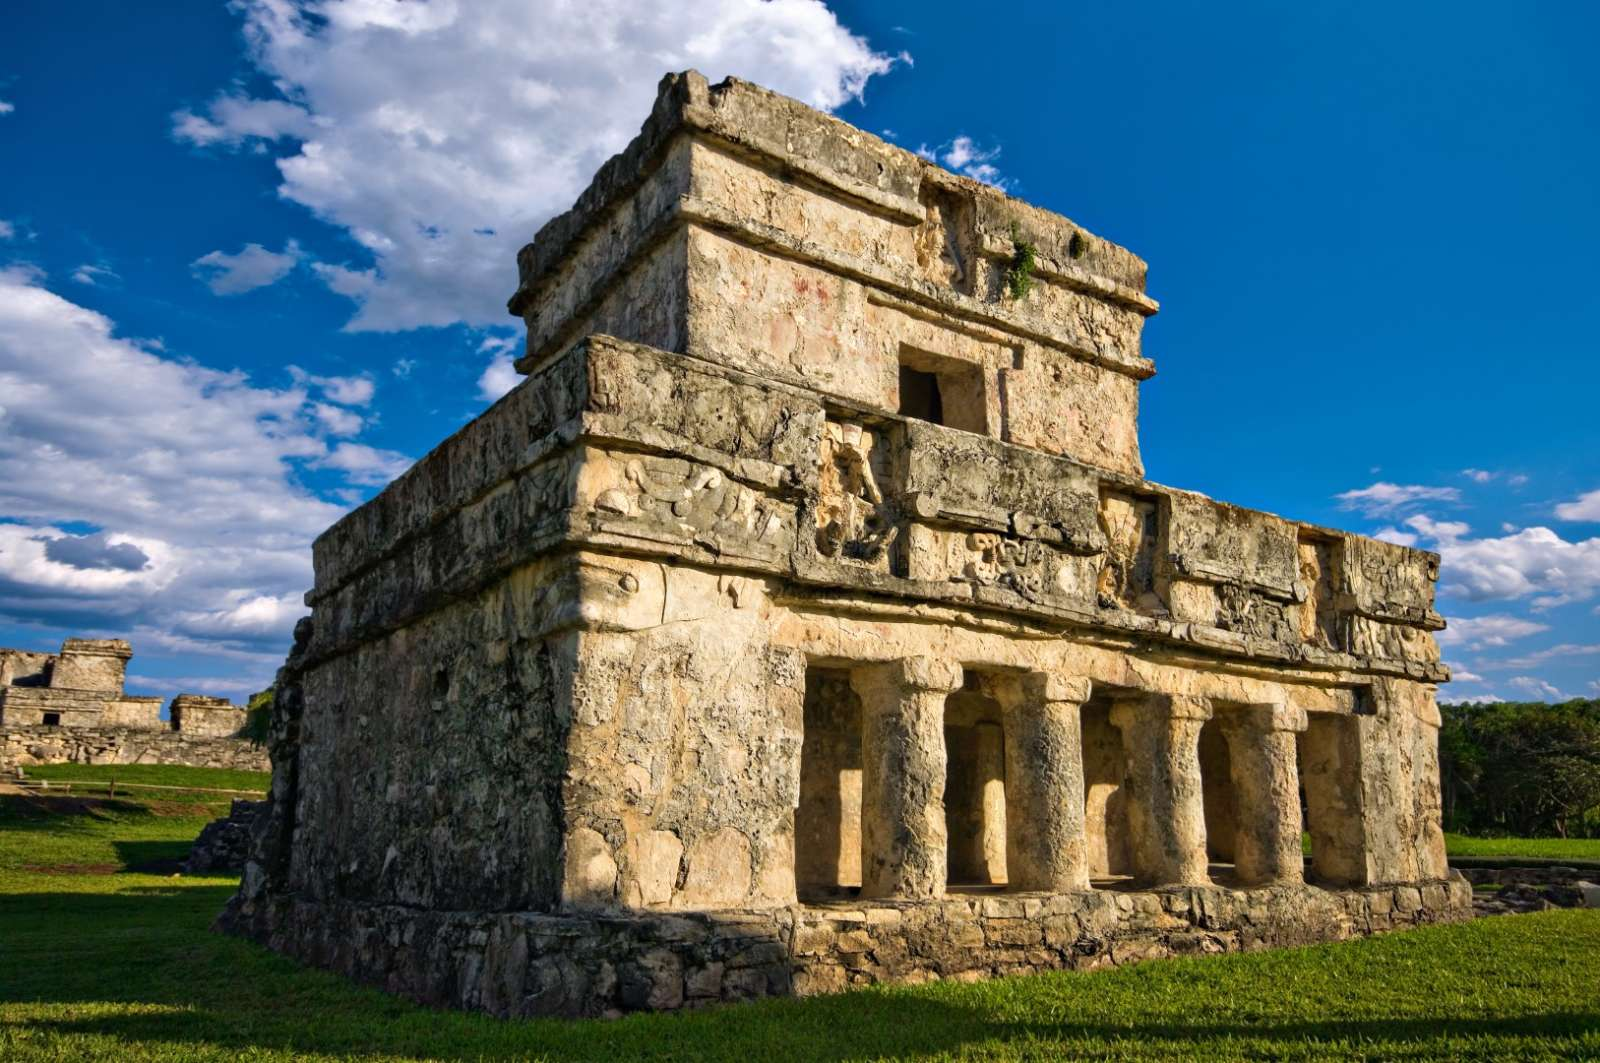 Temple of frescoes in Tulum, Mexico